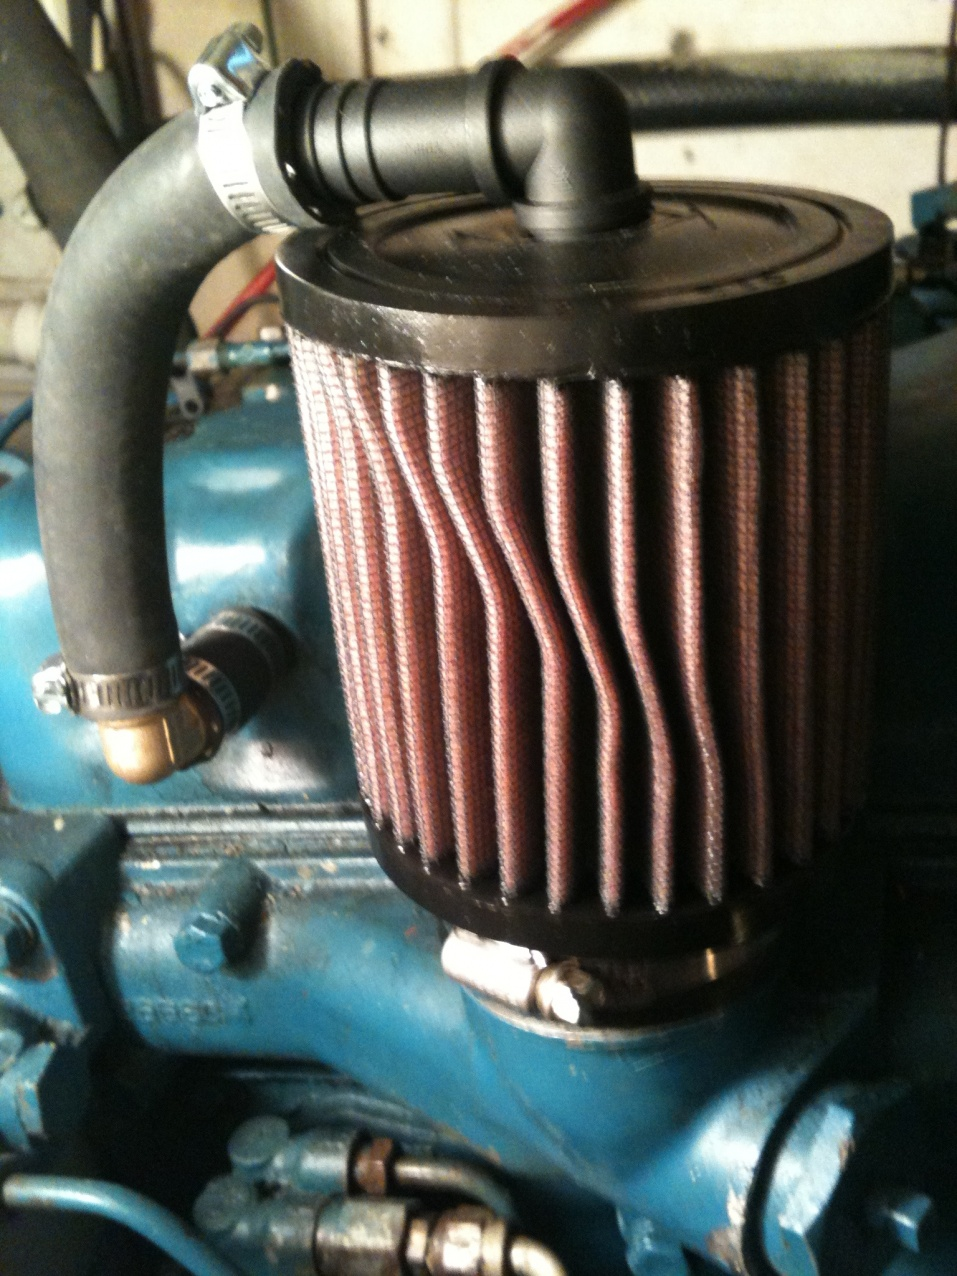 Click image for larger version  Name:Perkins Air Filter.jpg Views:152 Size:412.1 KB ID:29950